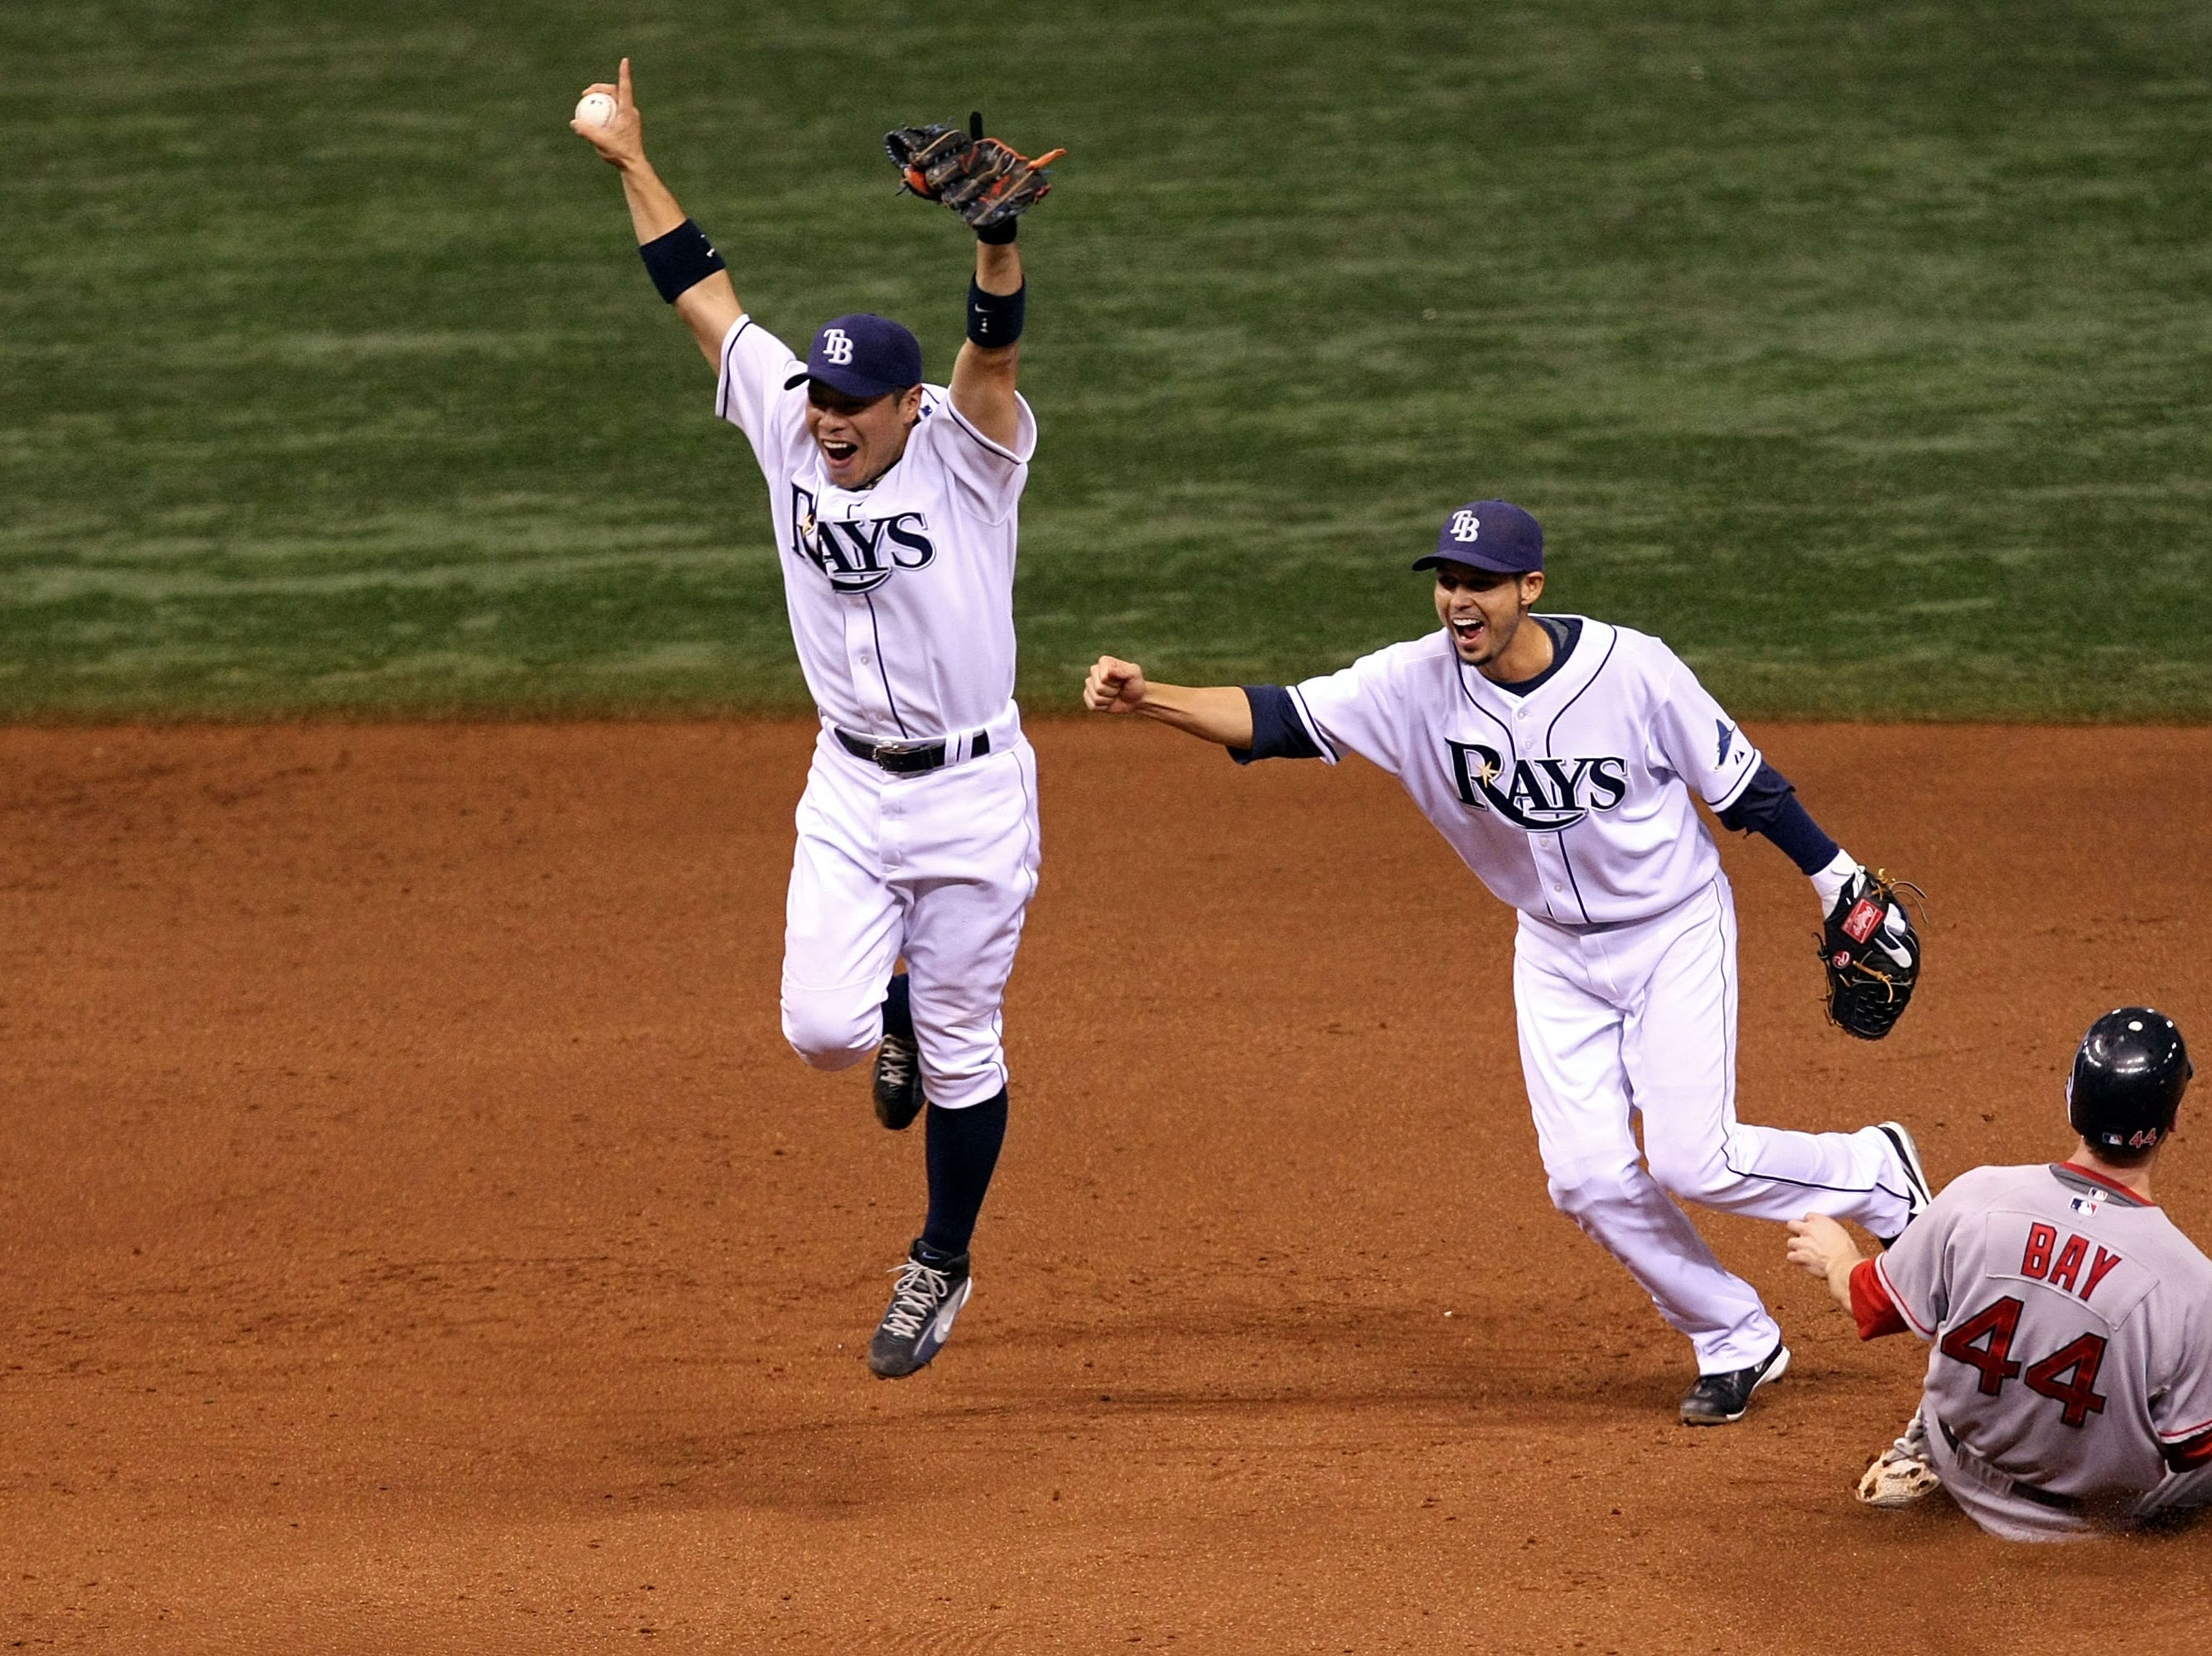 2008 ALCS Game 7: The Tampa Bay Rays completed their worst-to-first transformation, finishing off the Red Sox to secure their first trip to the World Series.